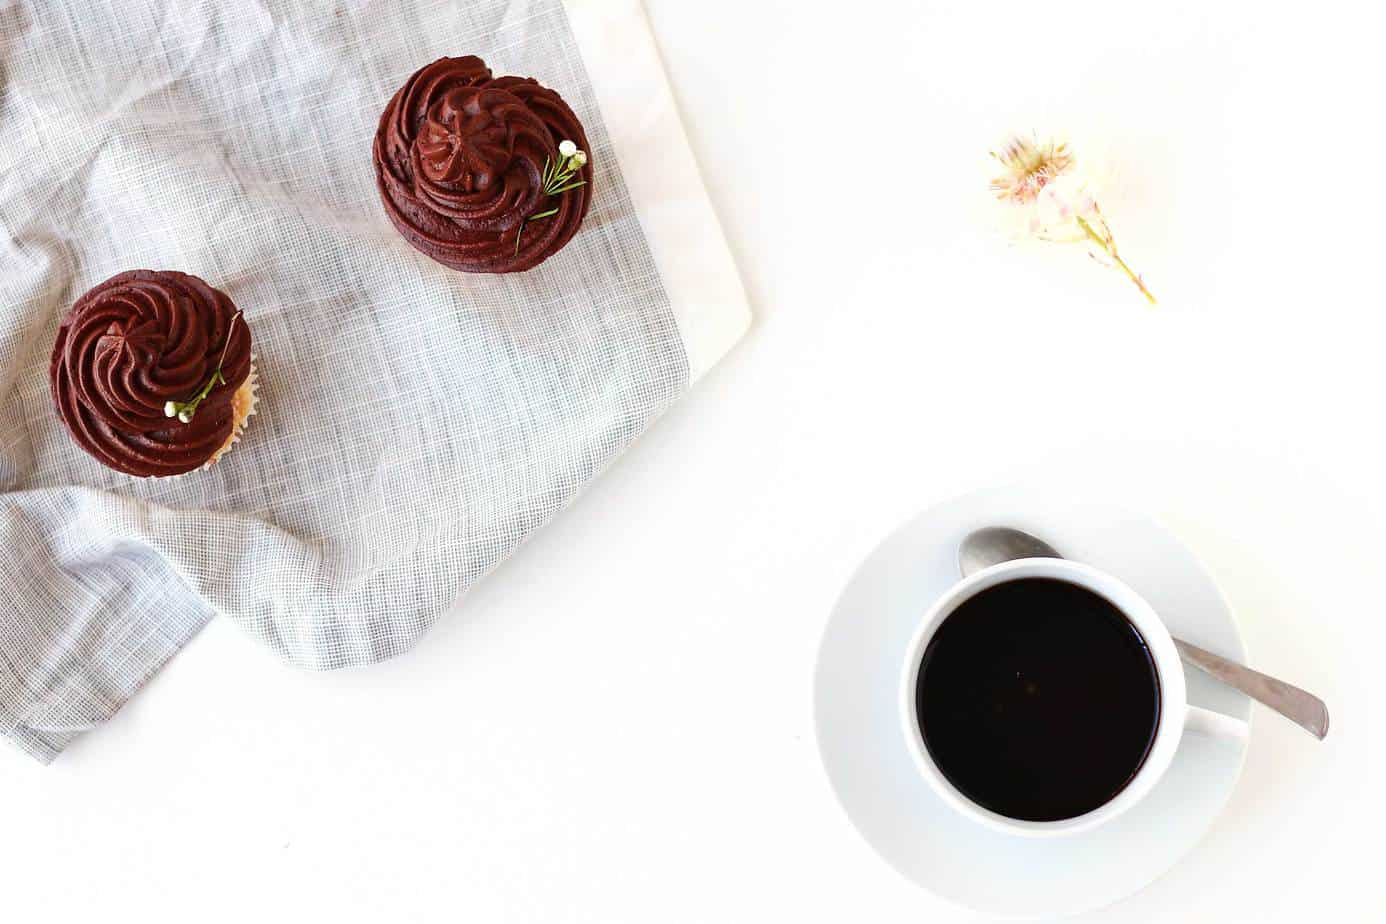 The ultimate go to cupcake recipe, these Easy Vanilla Cupcakes with Creamy Chocolate Frosting only take a few minutes to whip up and can be frozen for up to a few weeks! The only cupcake recipe you will ever need!